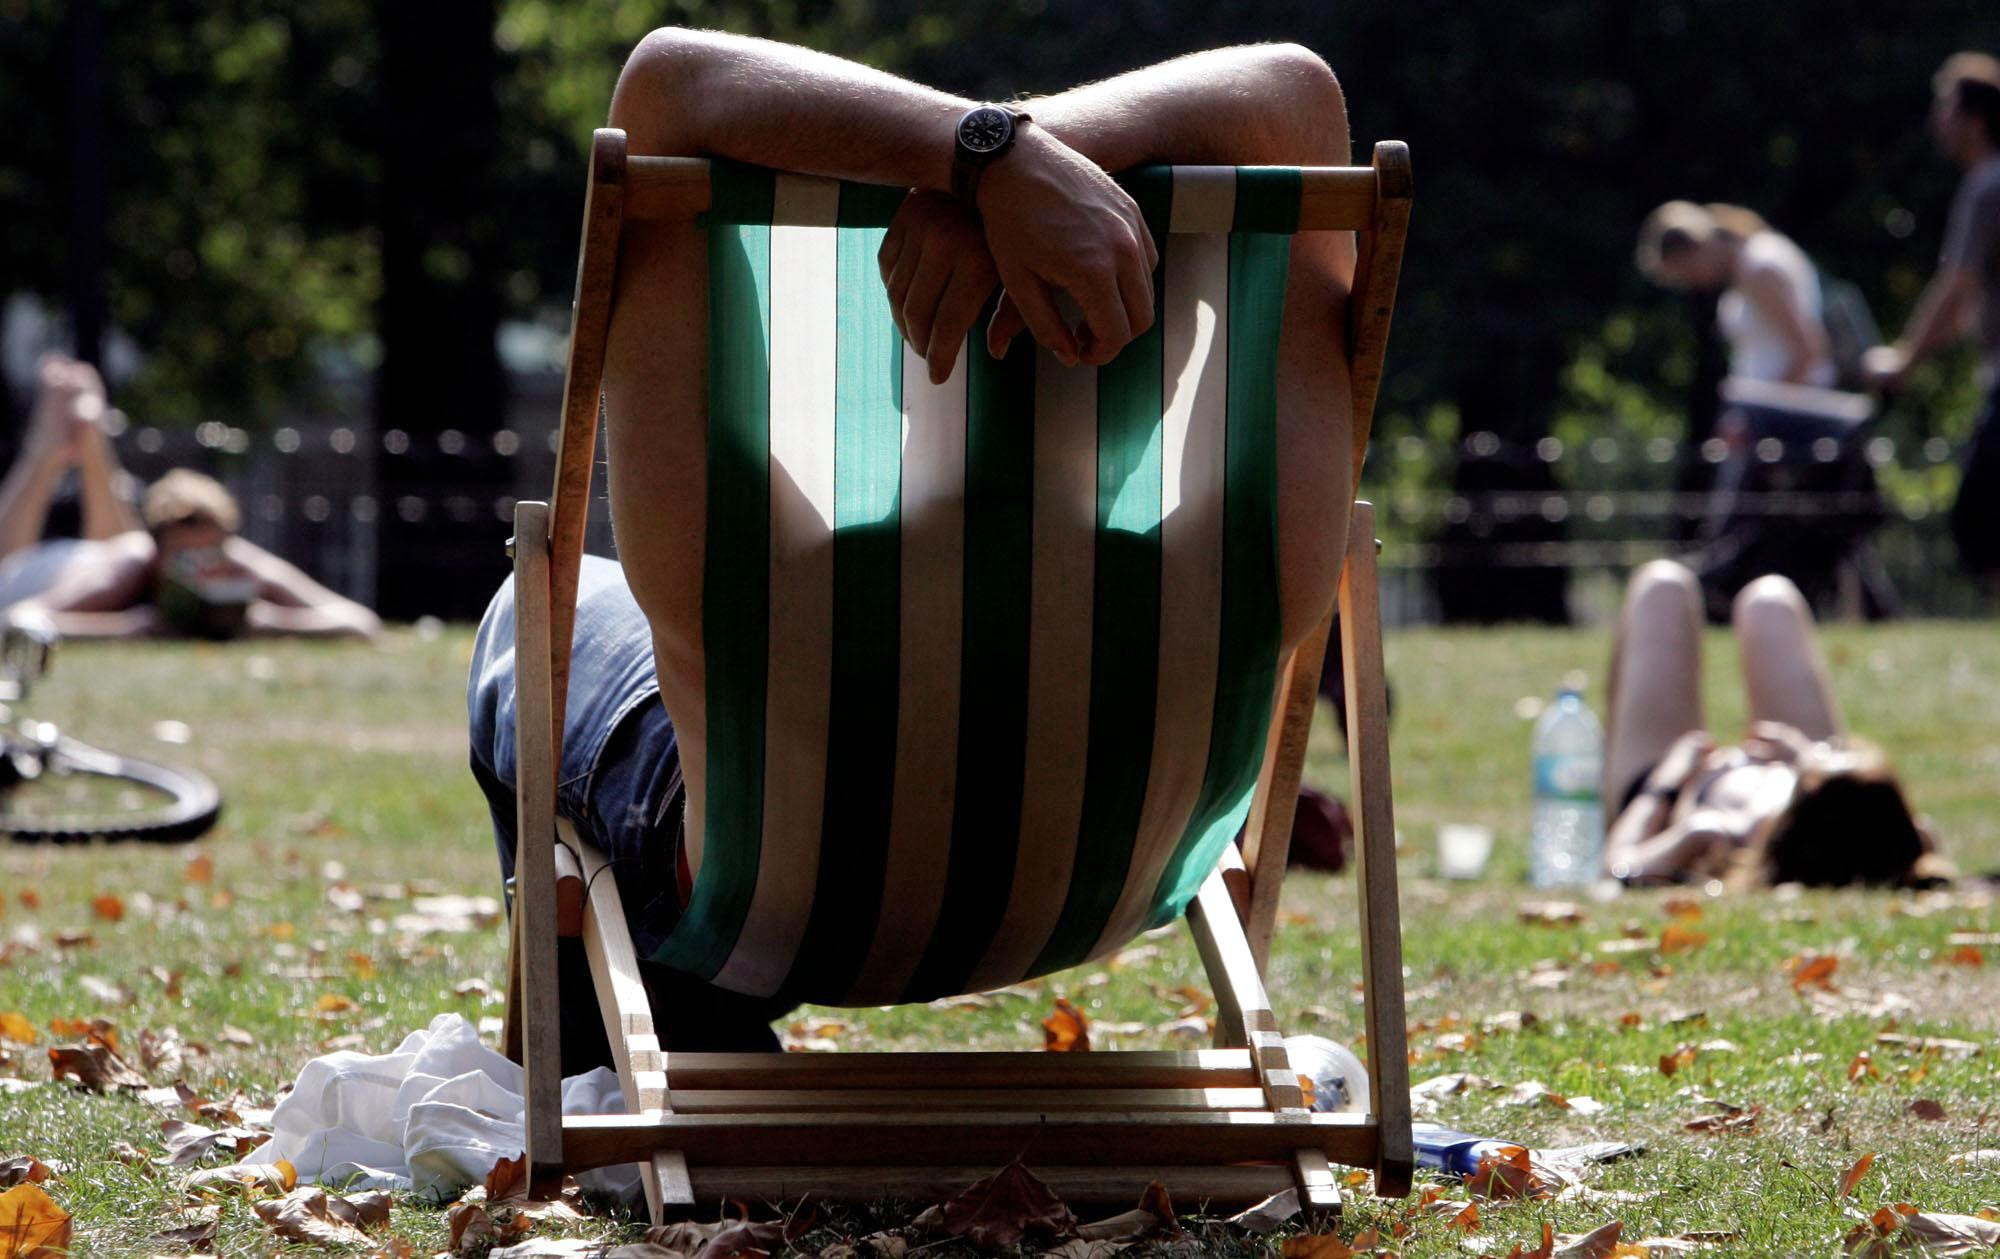 Members of the public sunbathe in London's Green Park, Sunday September 4, 2005, as the capital enjoys the September sunshine. PRESS ASSOCIATION Photo. Photo credit should read: Jane Mingay/PA.